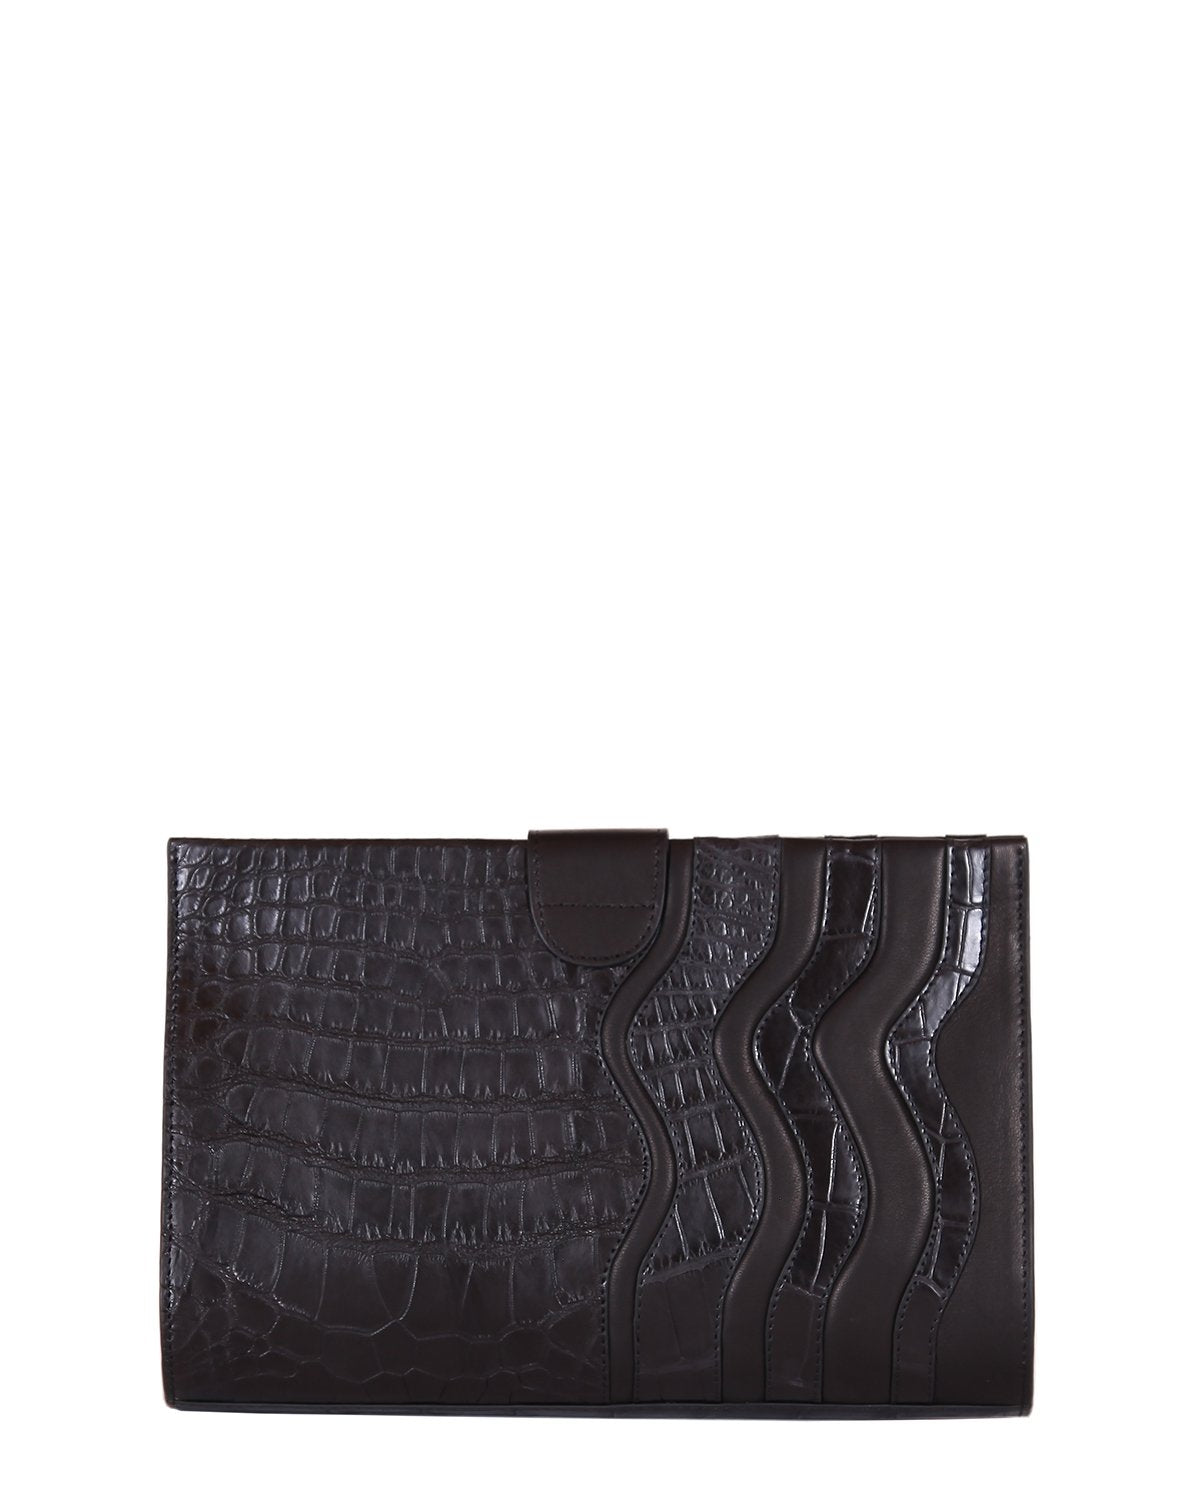 Black American Alligator Clutch with Lambskin Trims in black back view